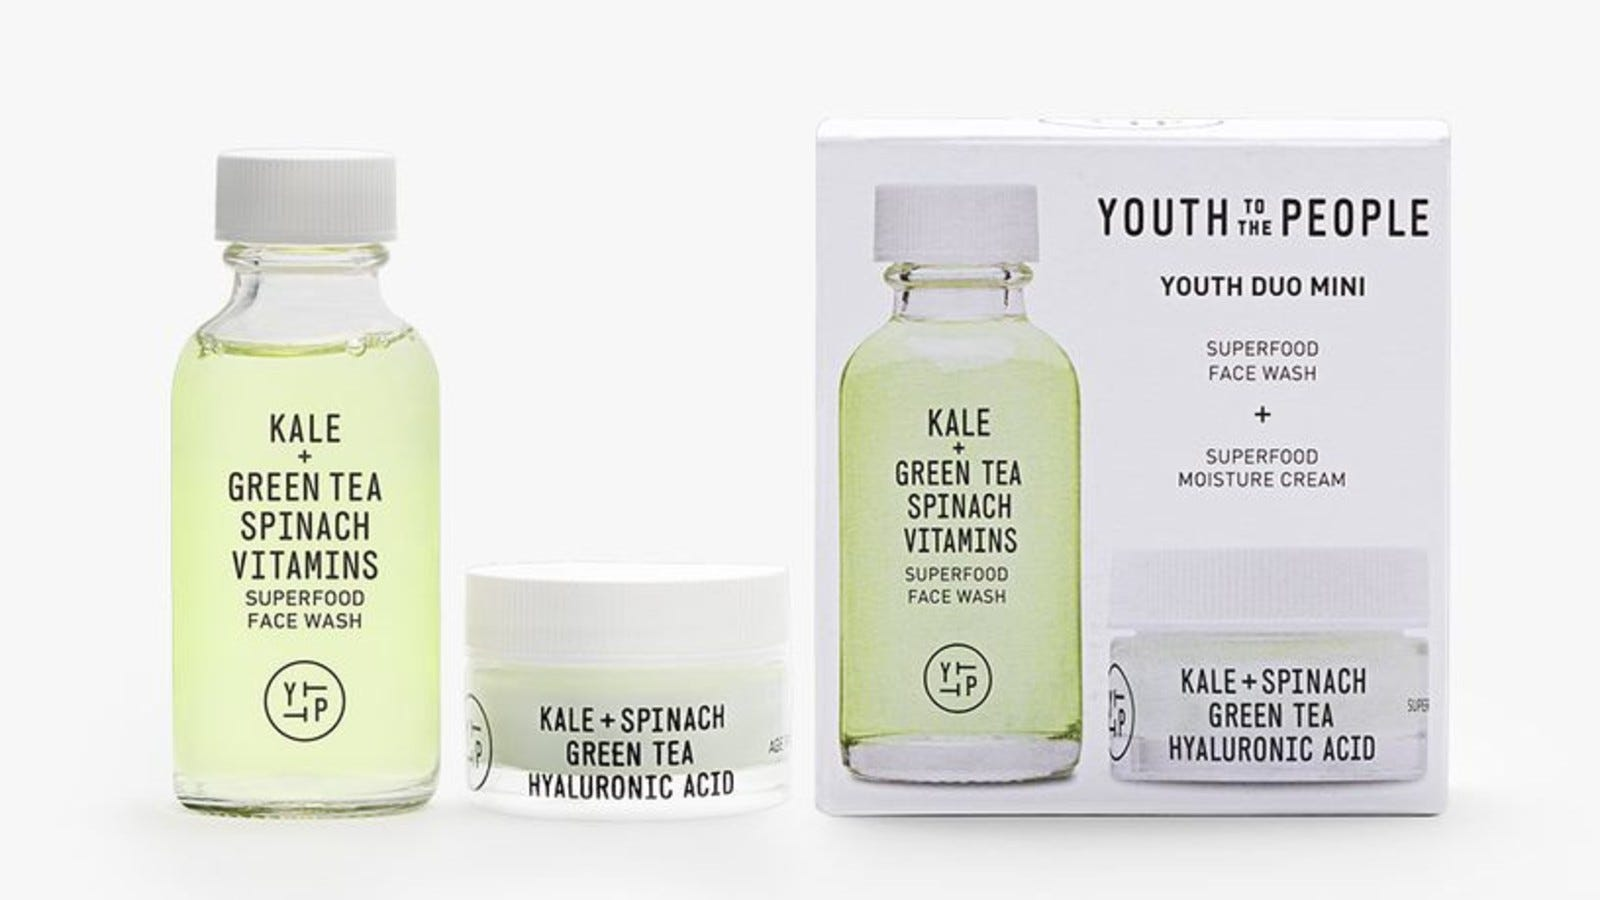 Youth To The People skincare products.